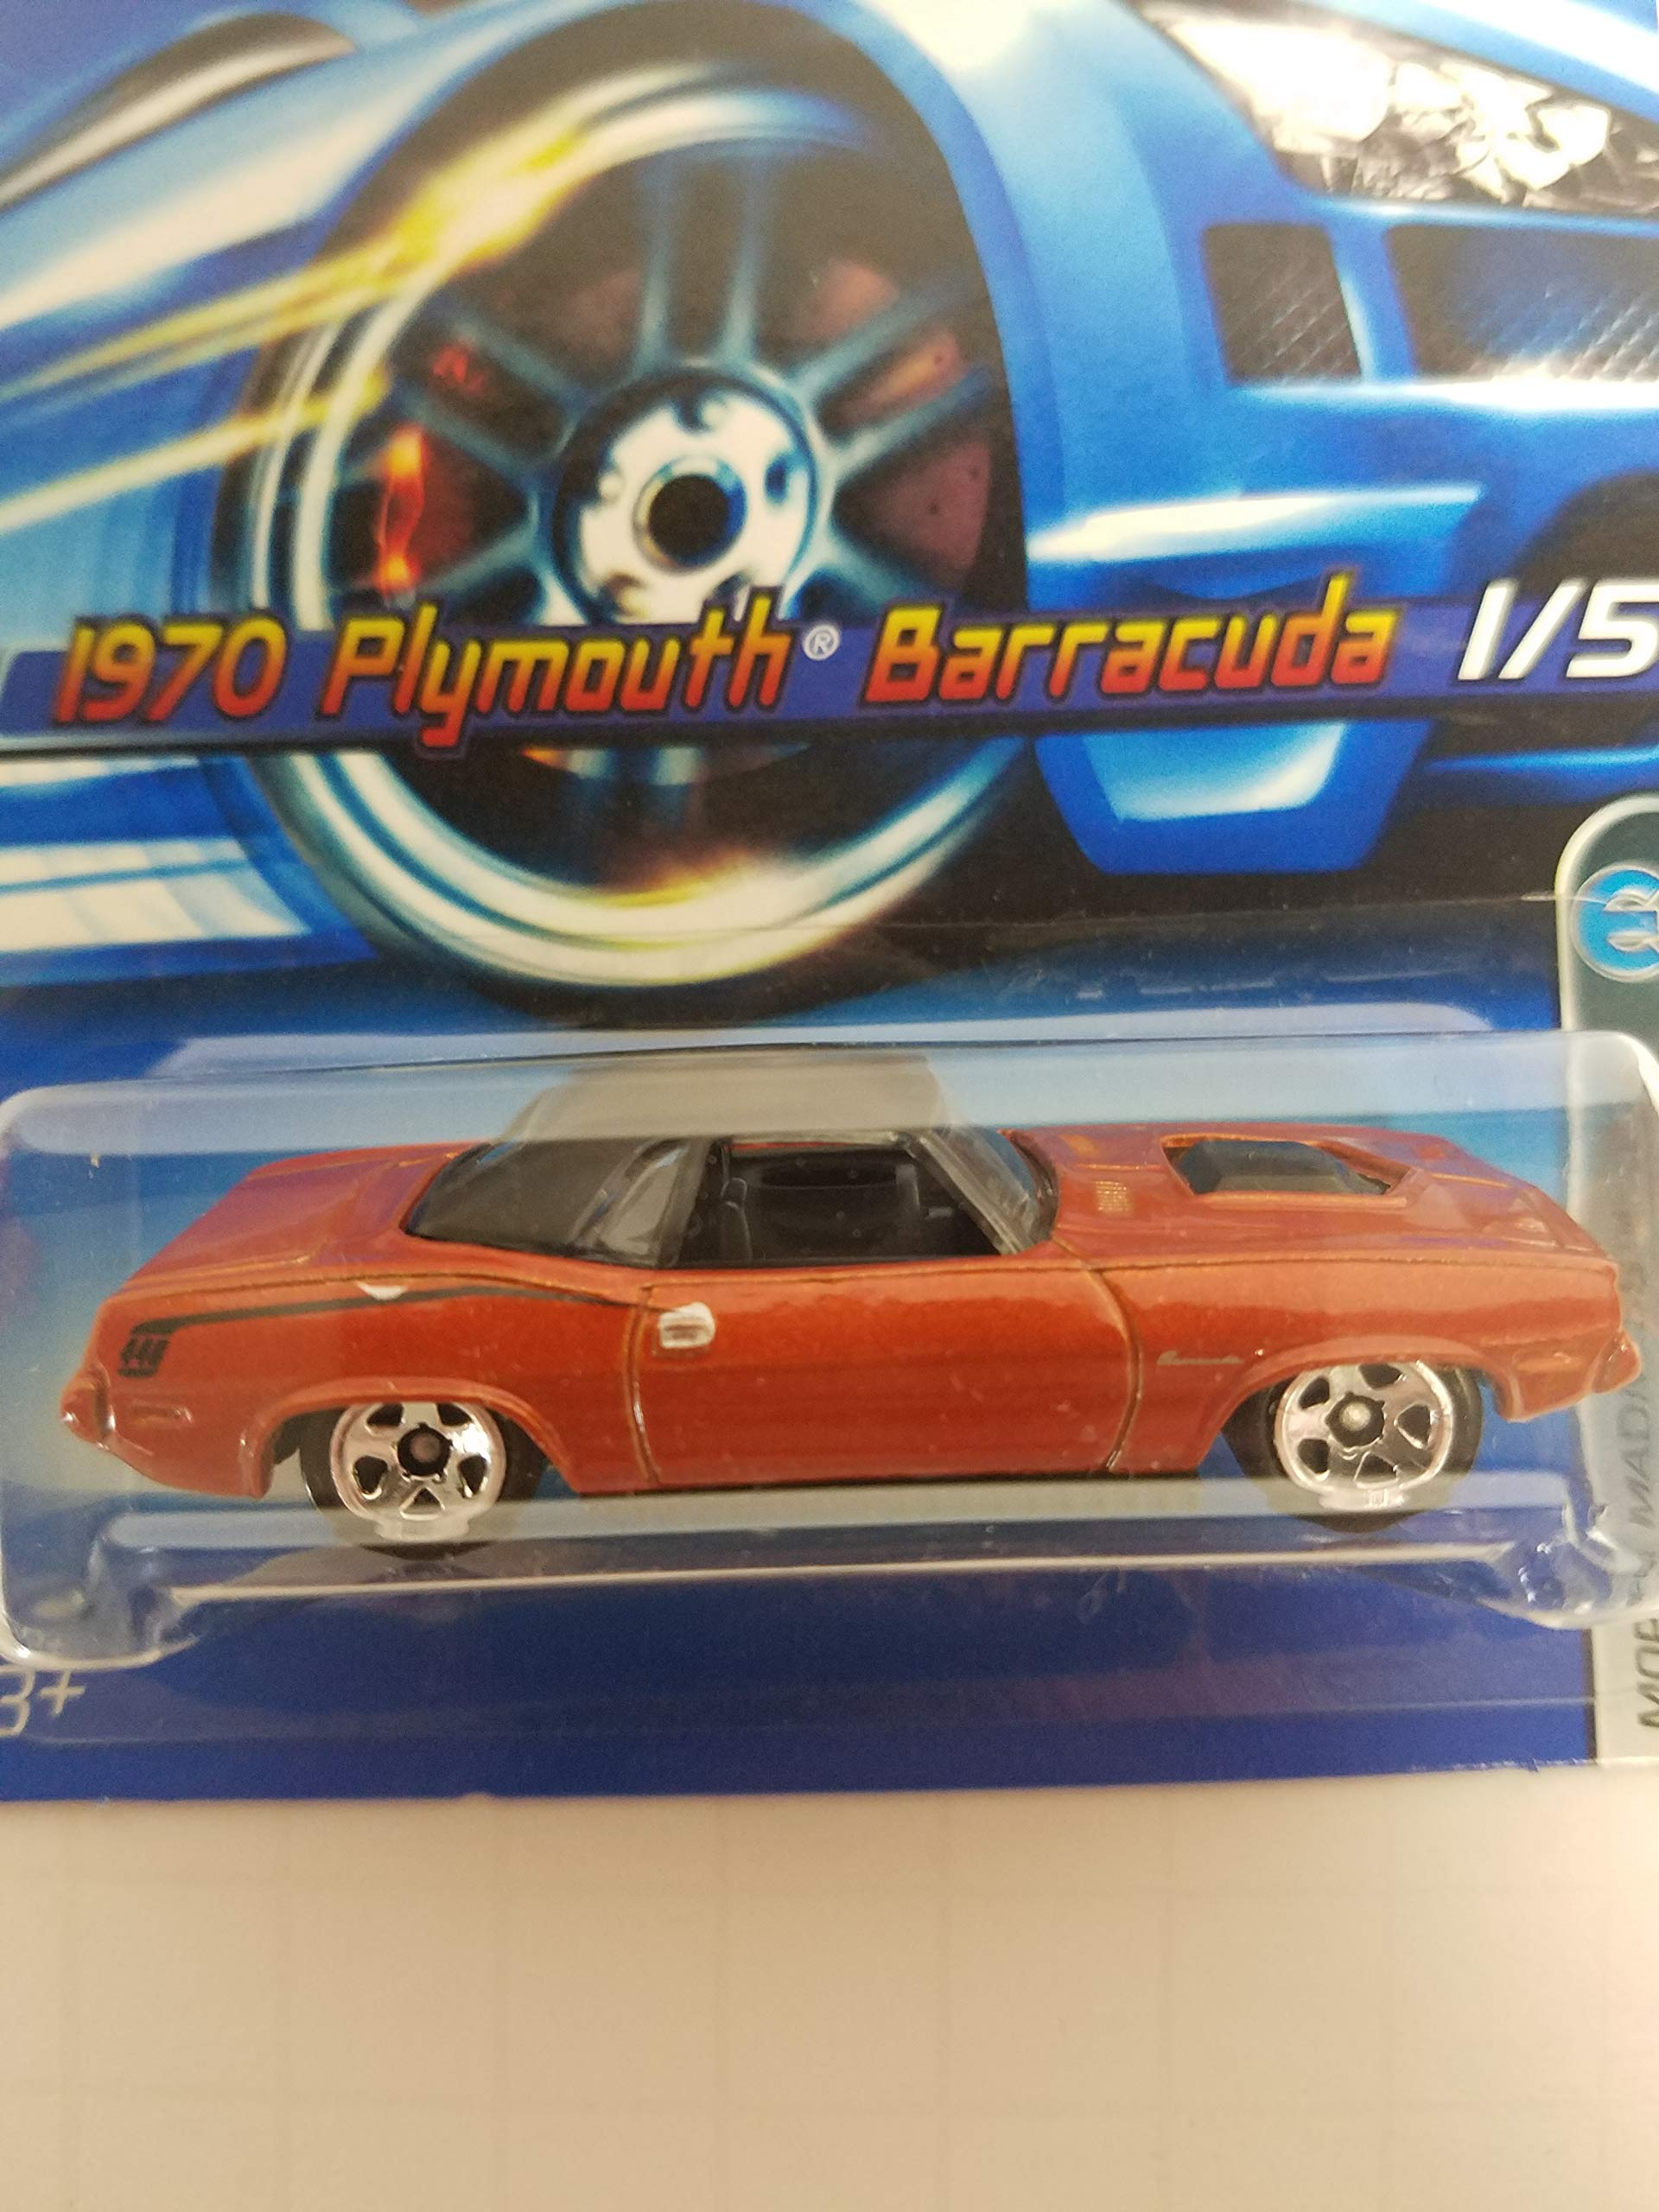 1970 Plymouth Barracuda Mopar Madness 1/5 No. 061 Burnt Orange Color Hot Wheels 2006 1/64 scale diecast car